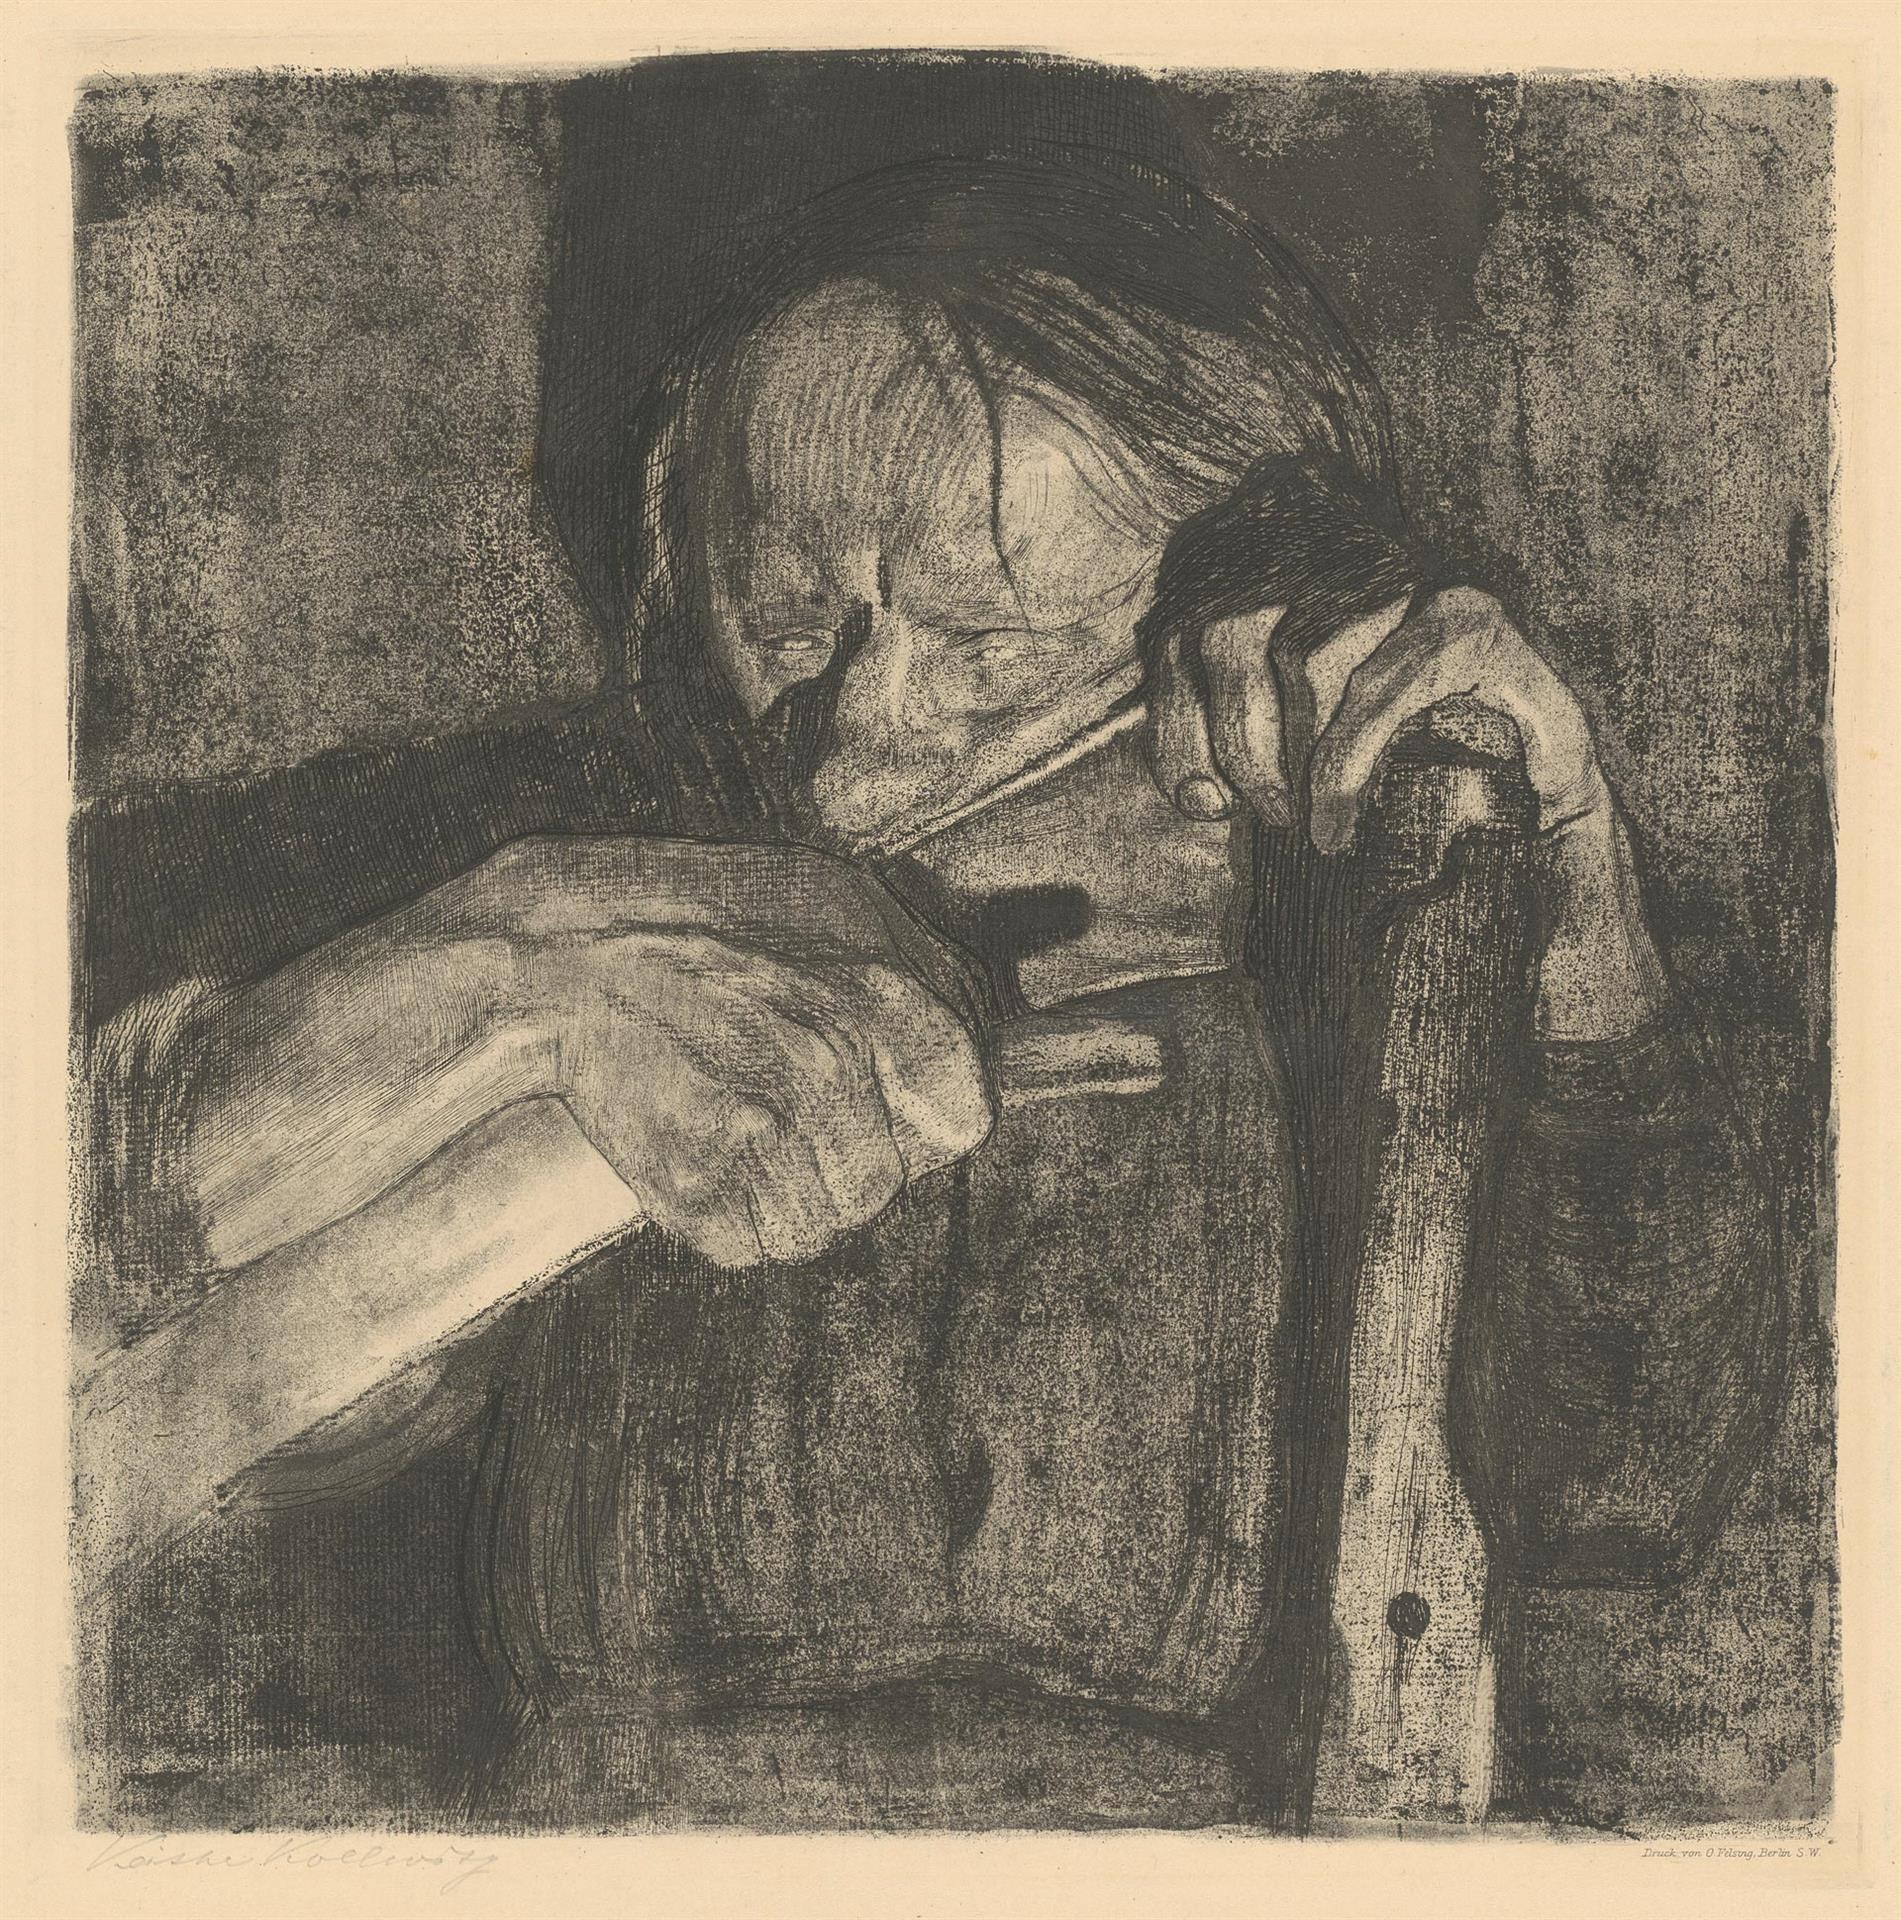 Käthe Kollwitz, Sharpening the Scythe, sheet 3 of the cycle »Peasants War«, 1908, line etching, drypoint, sandpaper, aquatint and soft ground with imprint of laid paper and Ziegler's transfer paper, Kn 88 X b, Cologne Kollwitz Collection © Käthe Kollwitz Museum Köln